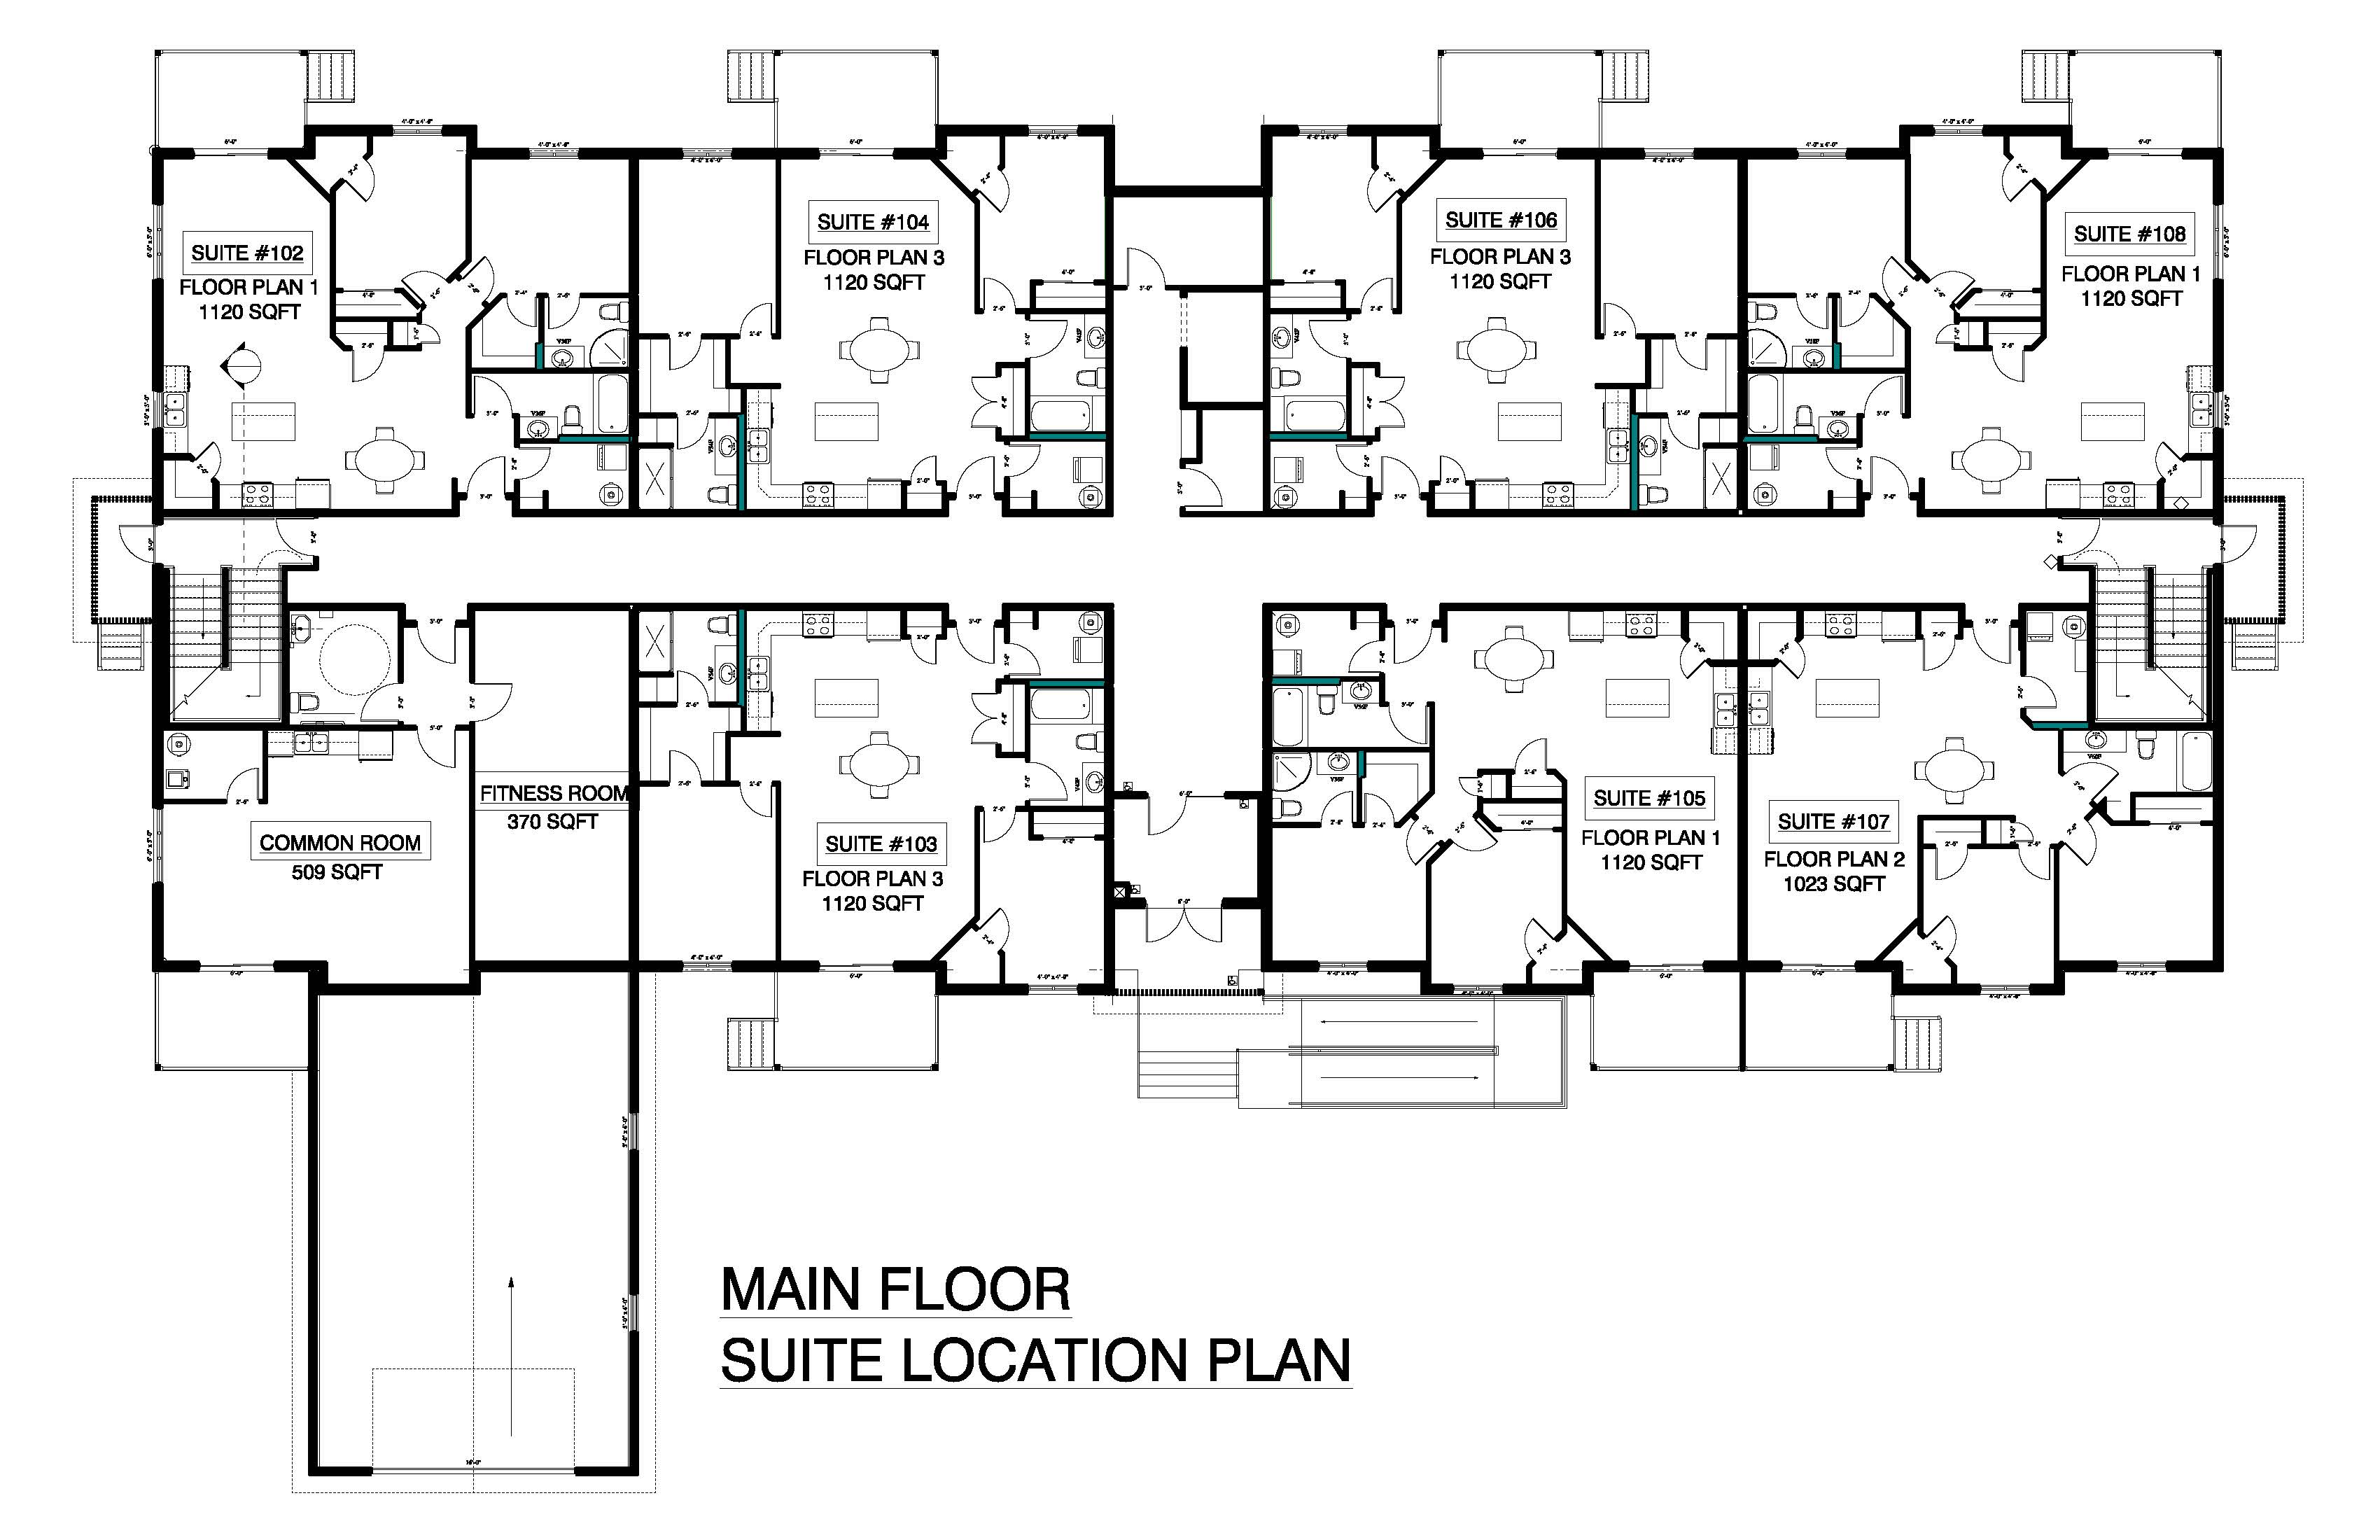 Main Floor Suite Location Plan